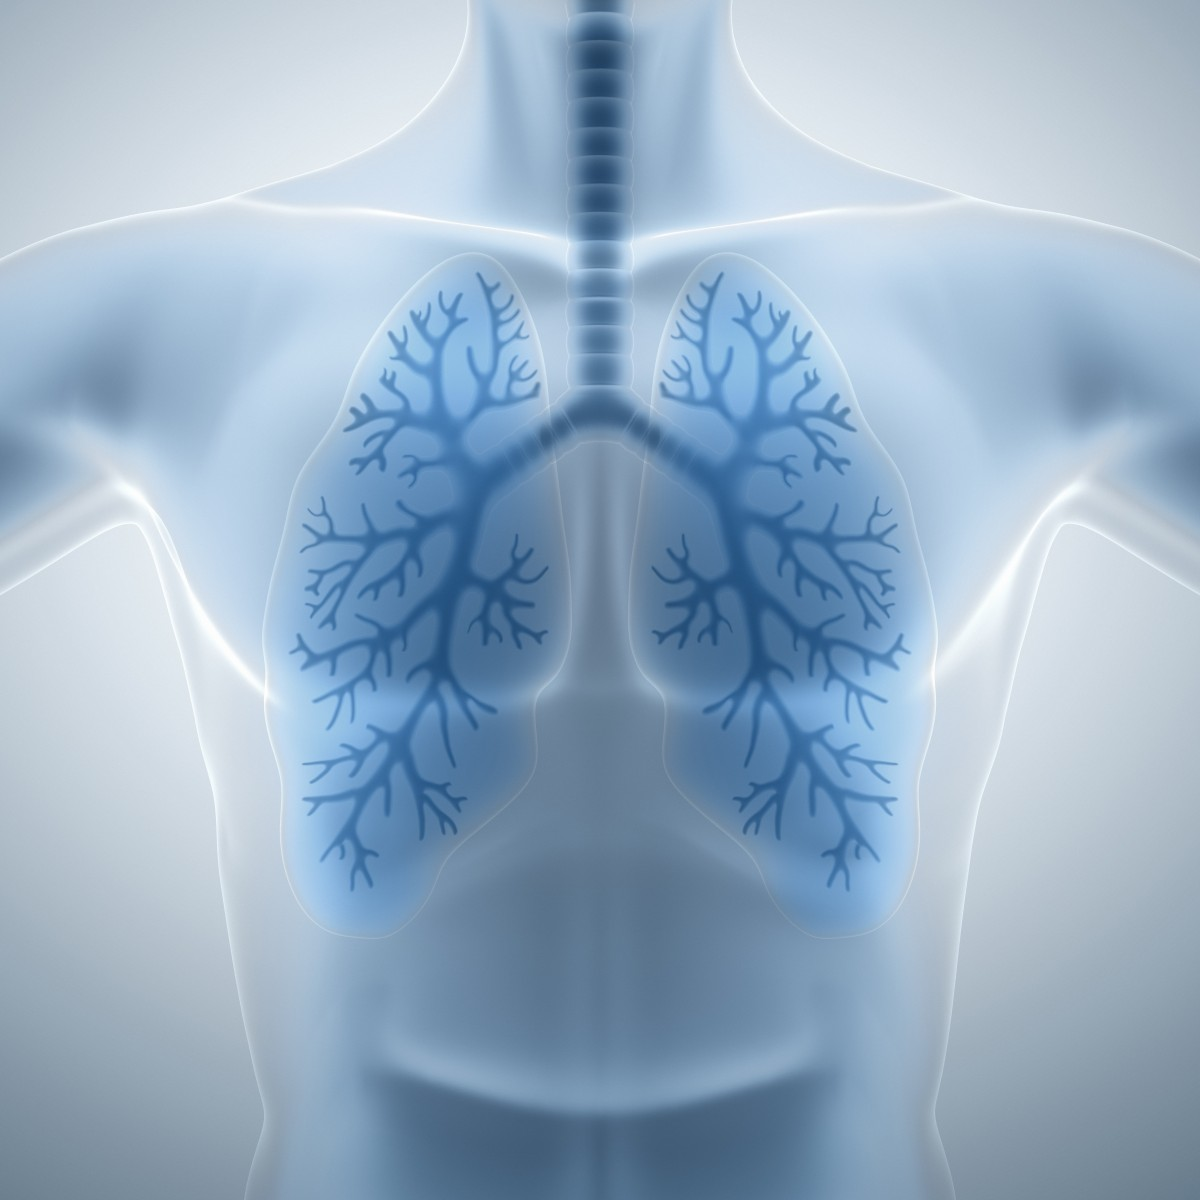 Researchers Discover New Players in the Gene Network Regulating Lung Cells and Tumorigenesis